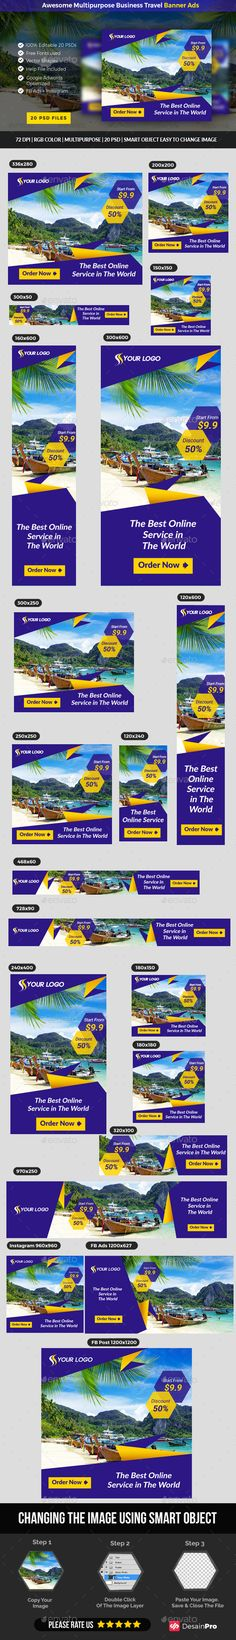 Travel Promotion Banners Attractive Banners